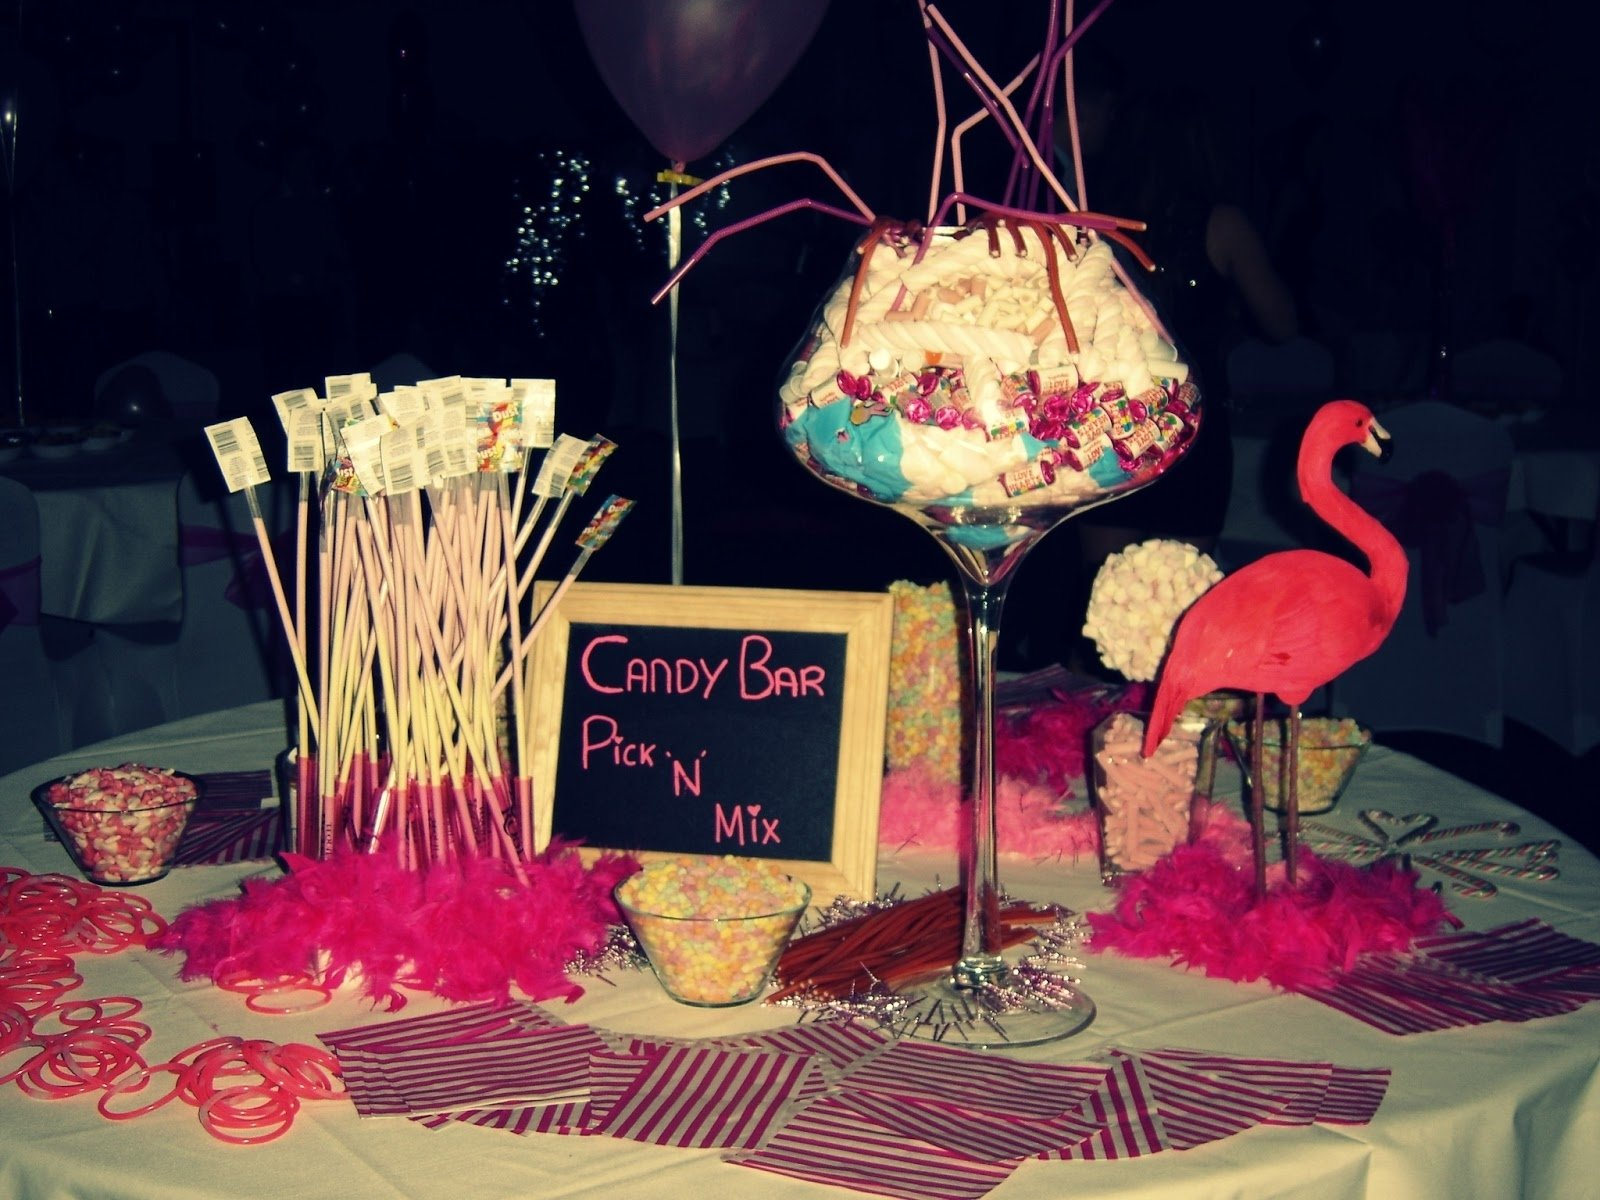 10 Stylish Ideas For 18Th Birthday Party birthday party ideas android iphone ipad dma homes 34945 3 2020